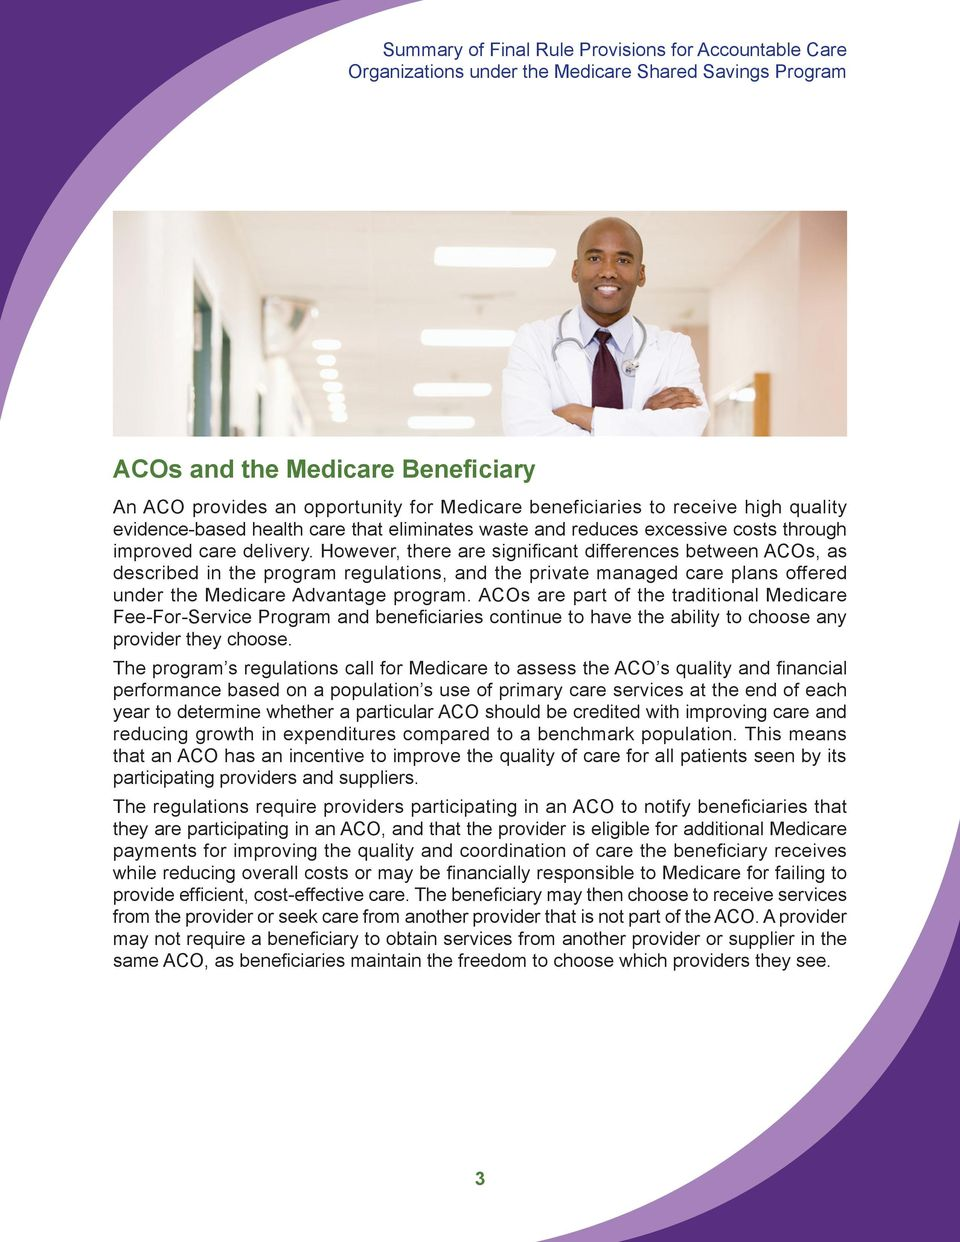 However, there are significant differences between ACOs, as described in the program regulations, and the private managed care plans offered under the Medicare Advantage program.